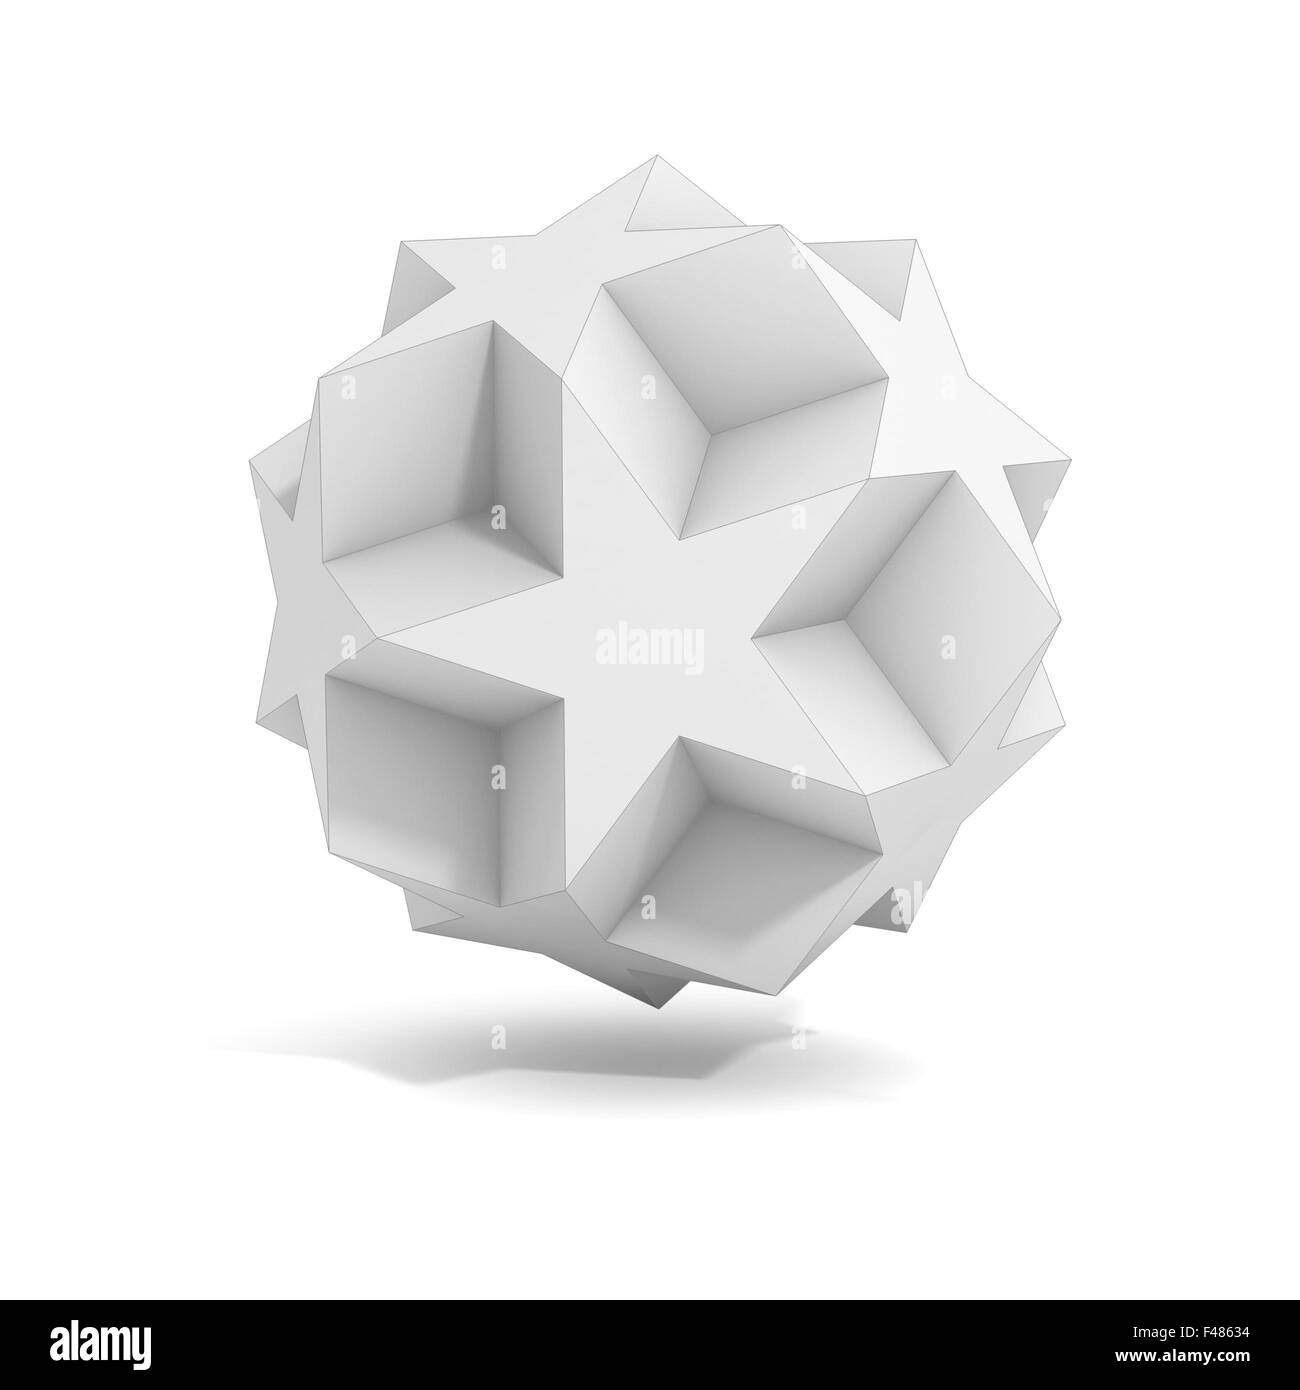 abstract geometric 3d object, more polyhedron variations in this set - Stock Image